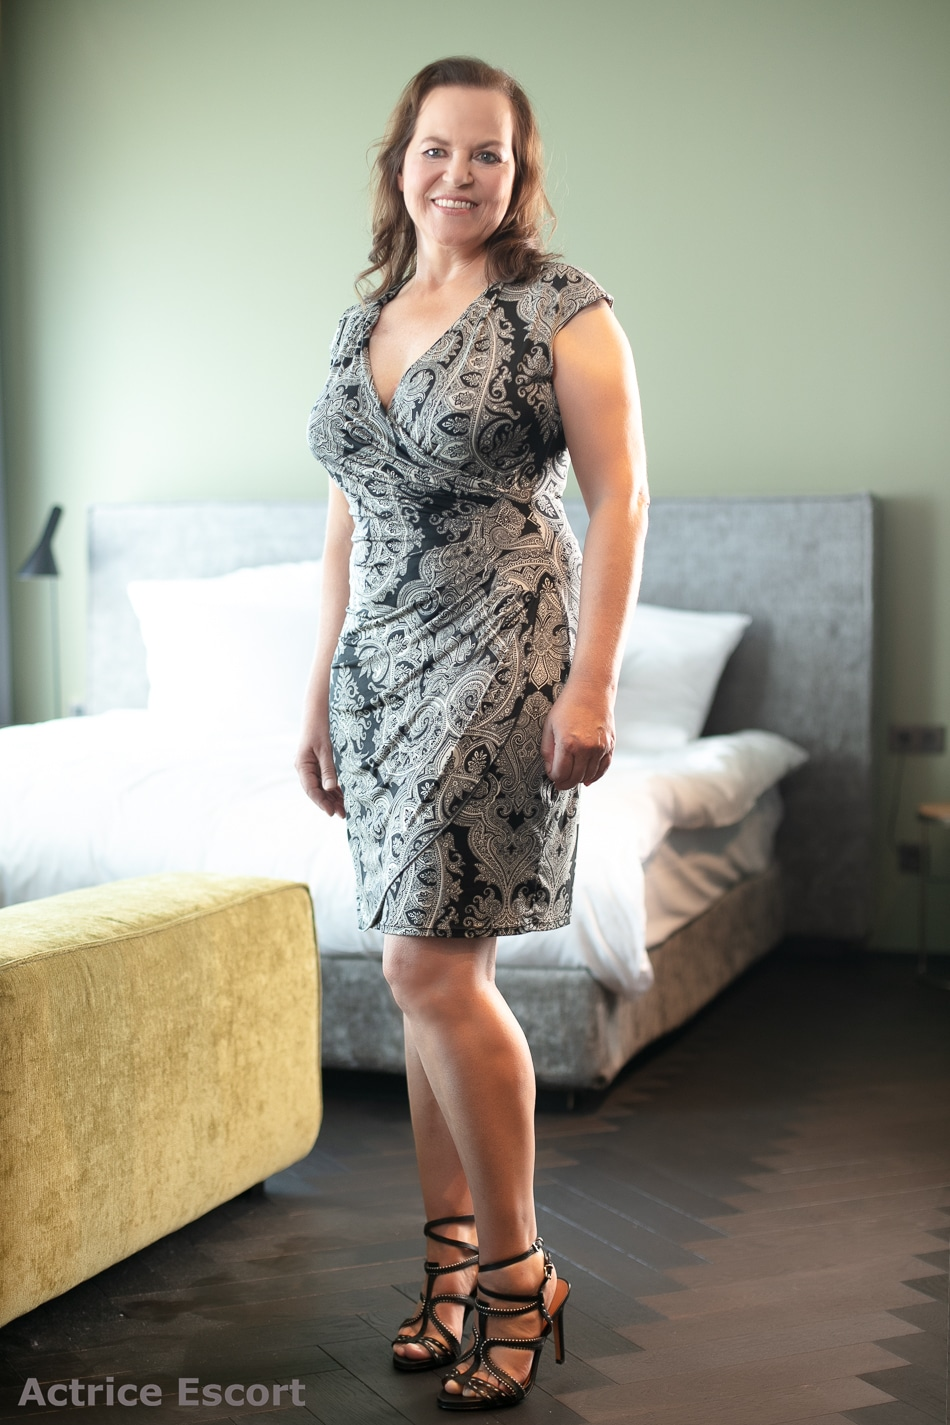 Bettina Escortservice Duesseldorf(10)